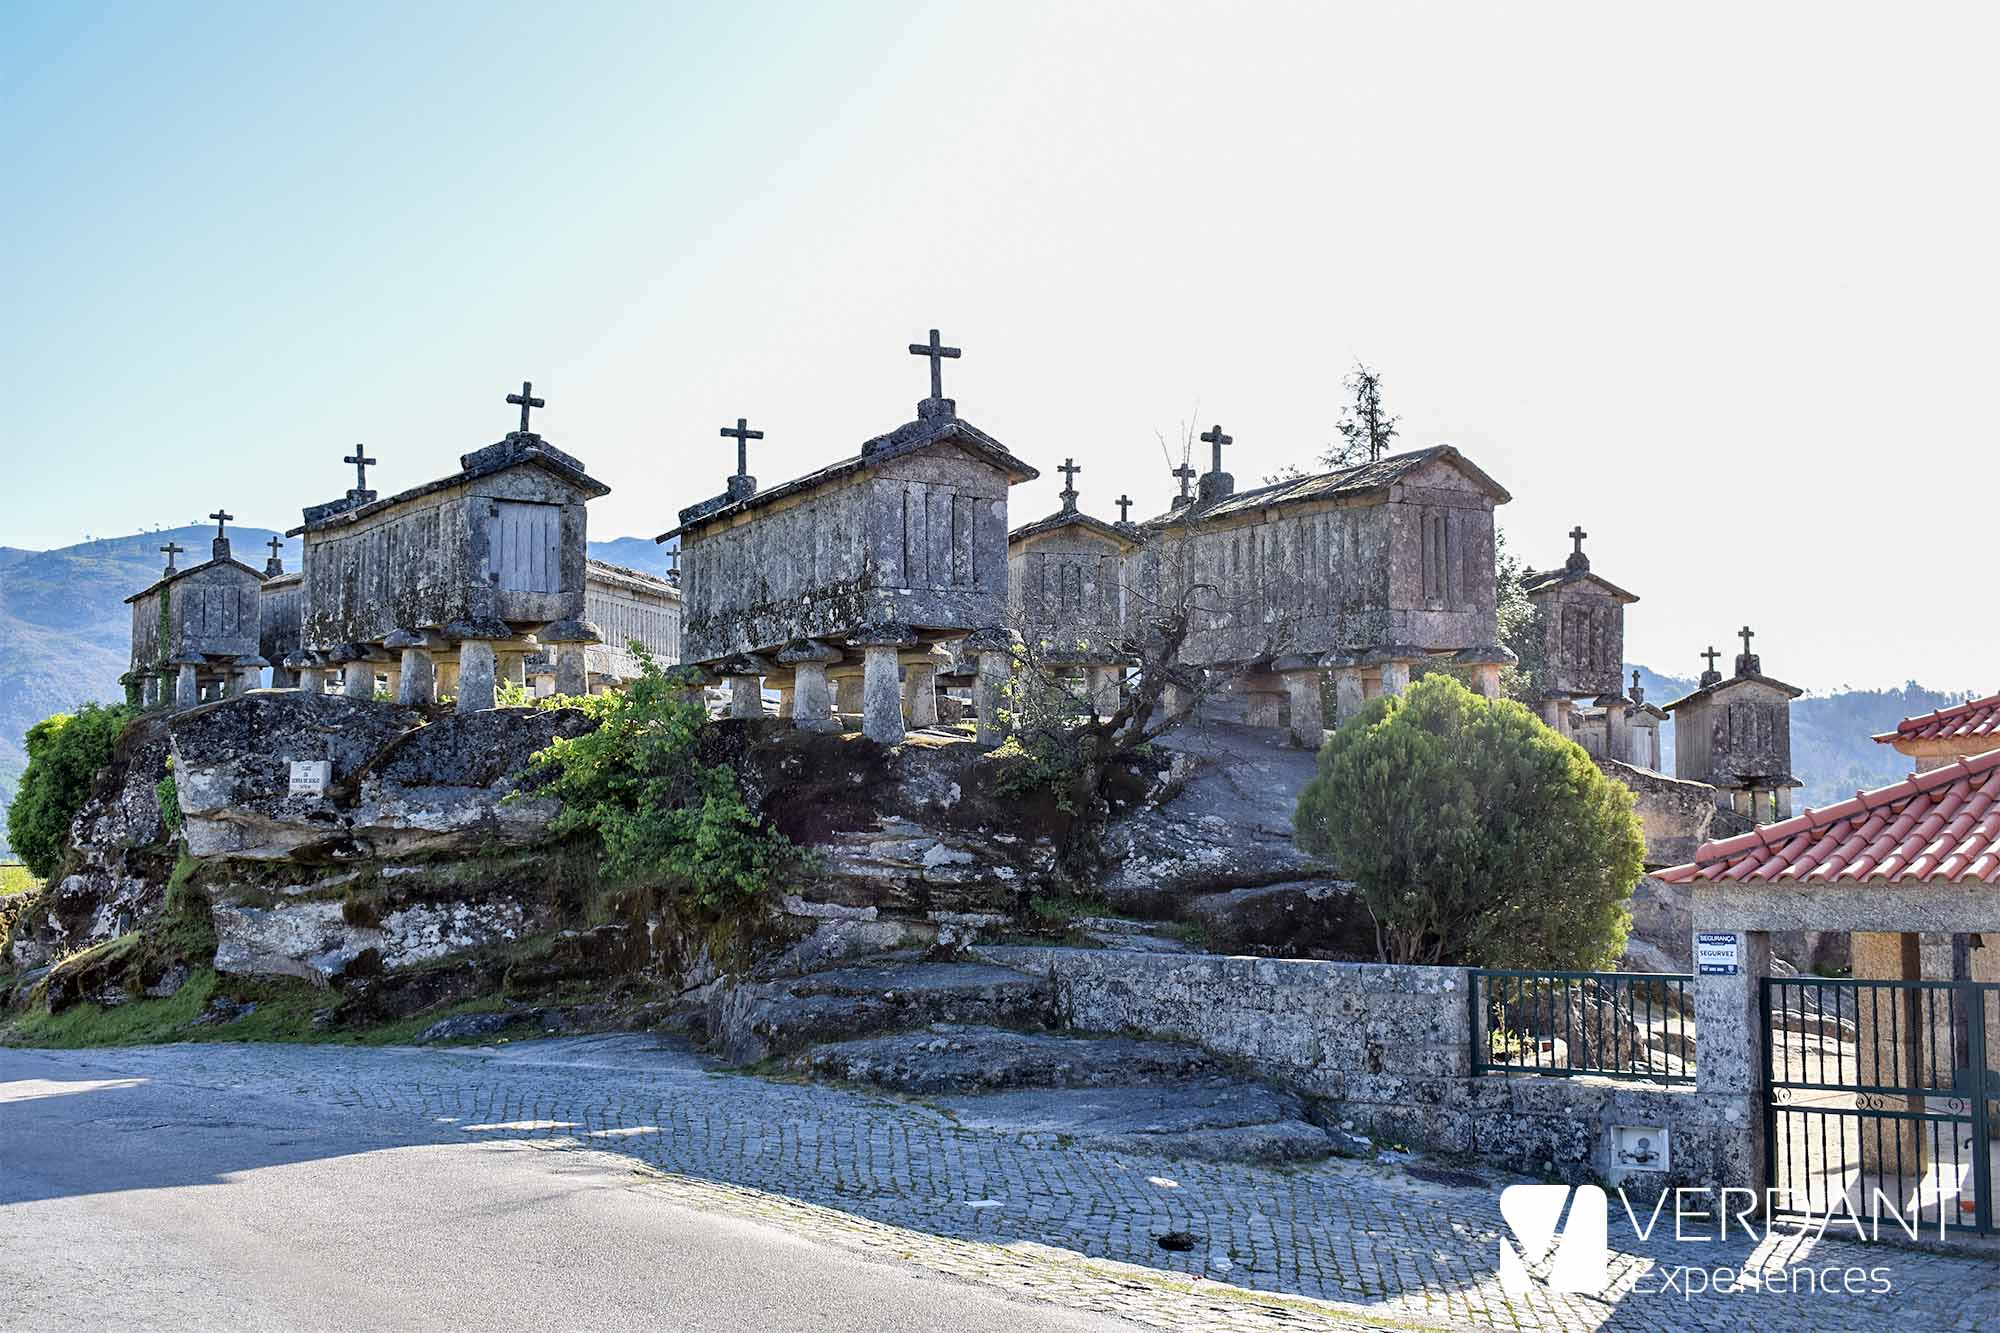 Horreos (granaries) Soajo